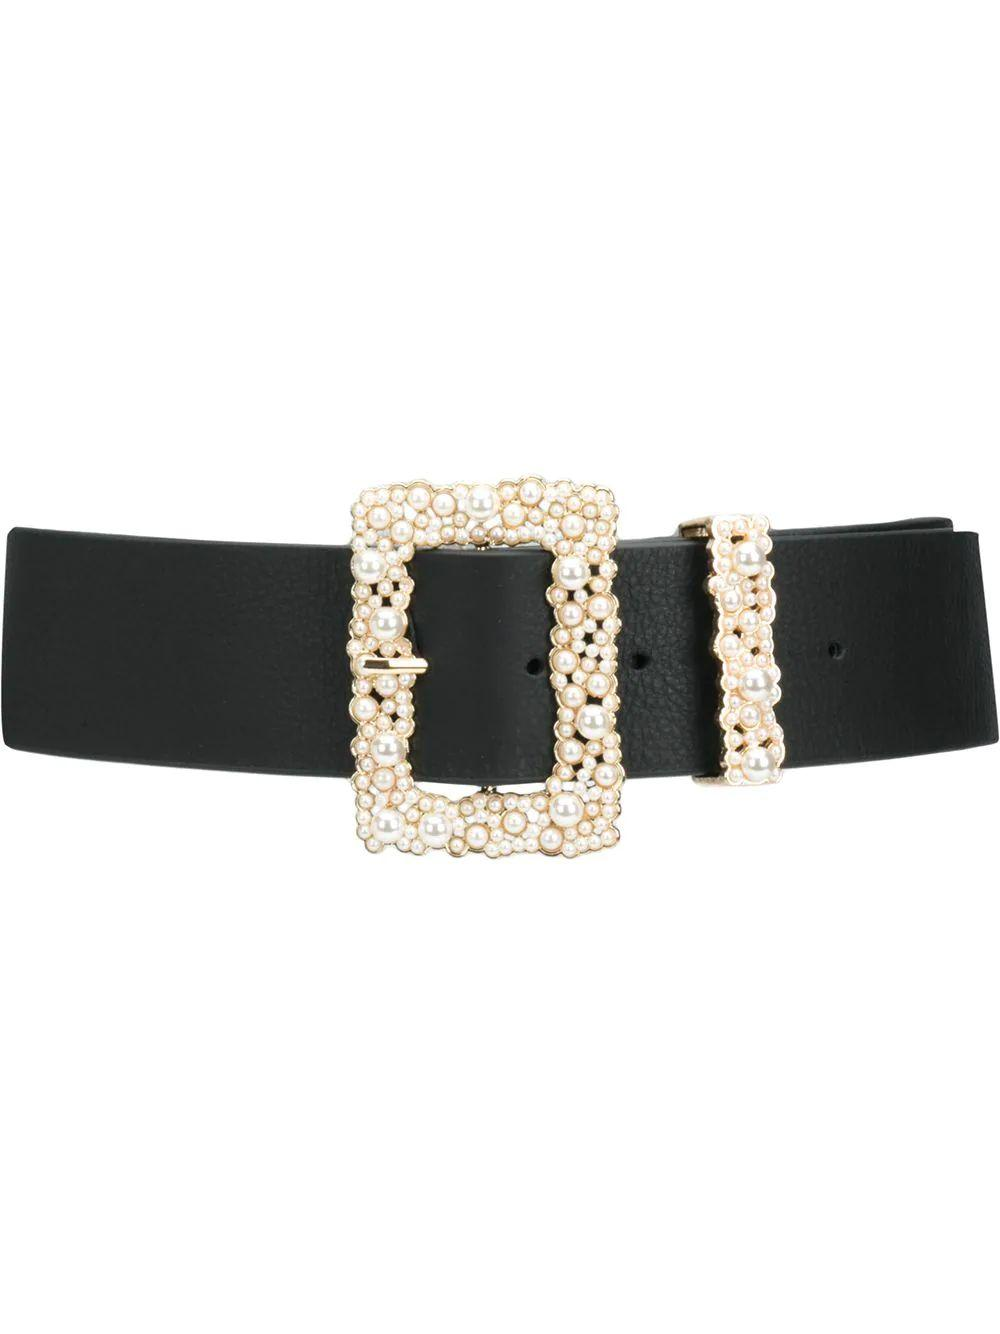 Devon Square Buckle Belt